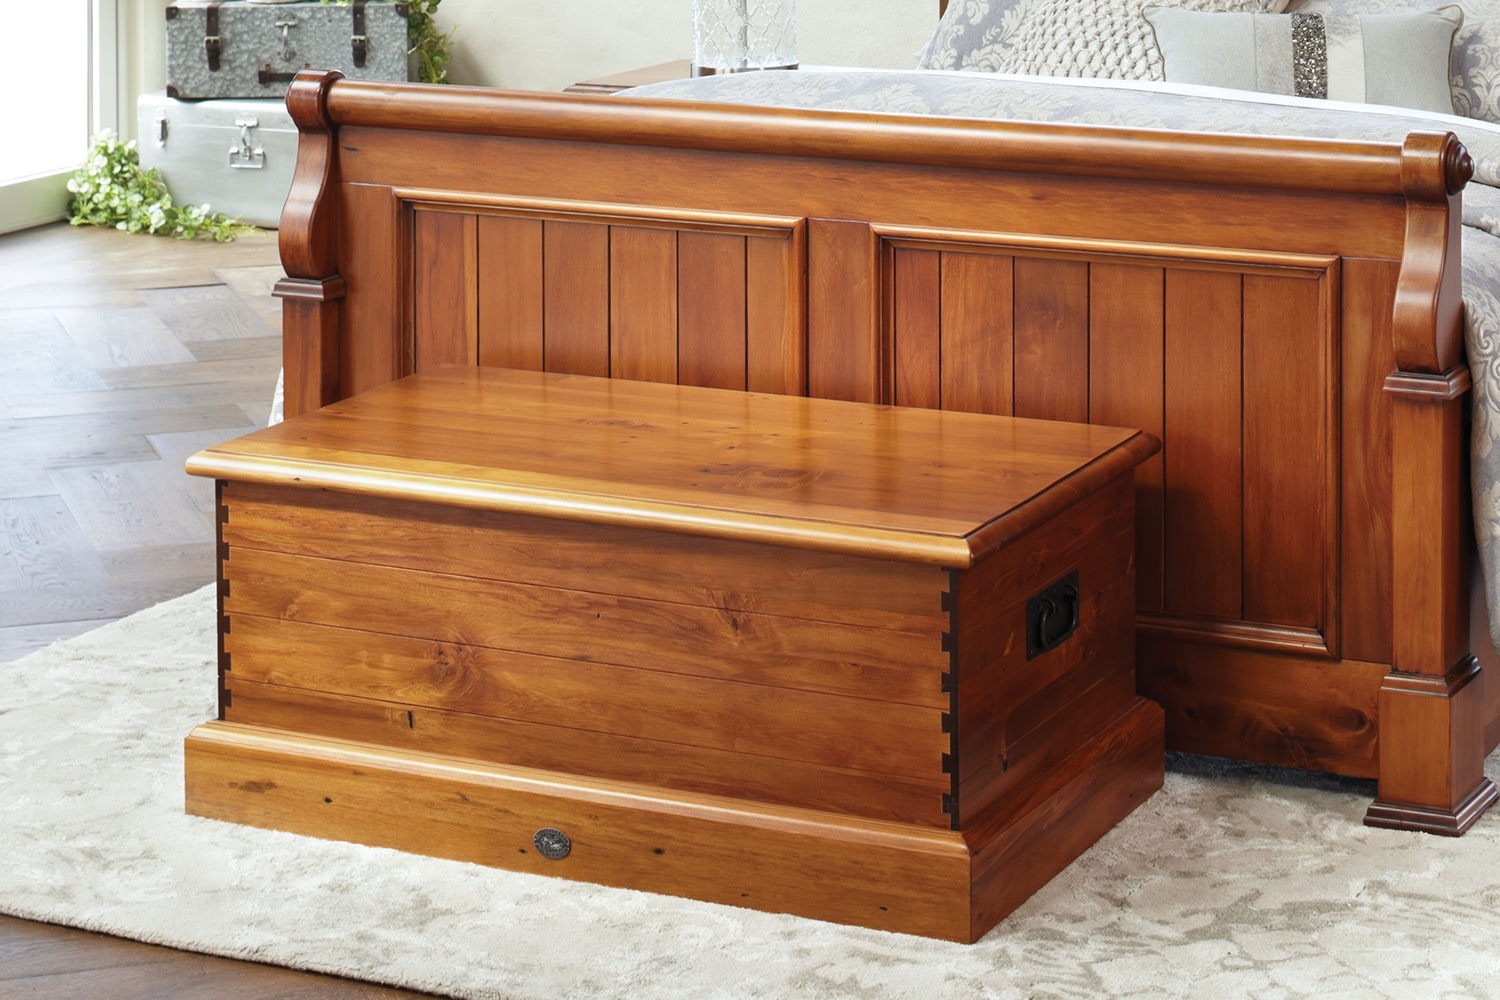 Clevedon Sea Chest by Woodpecker Furniture